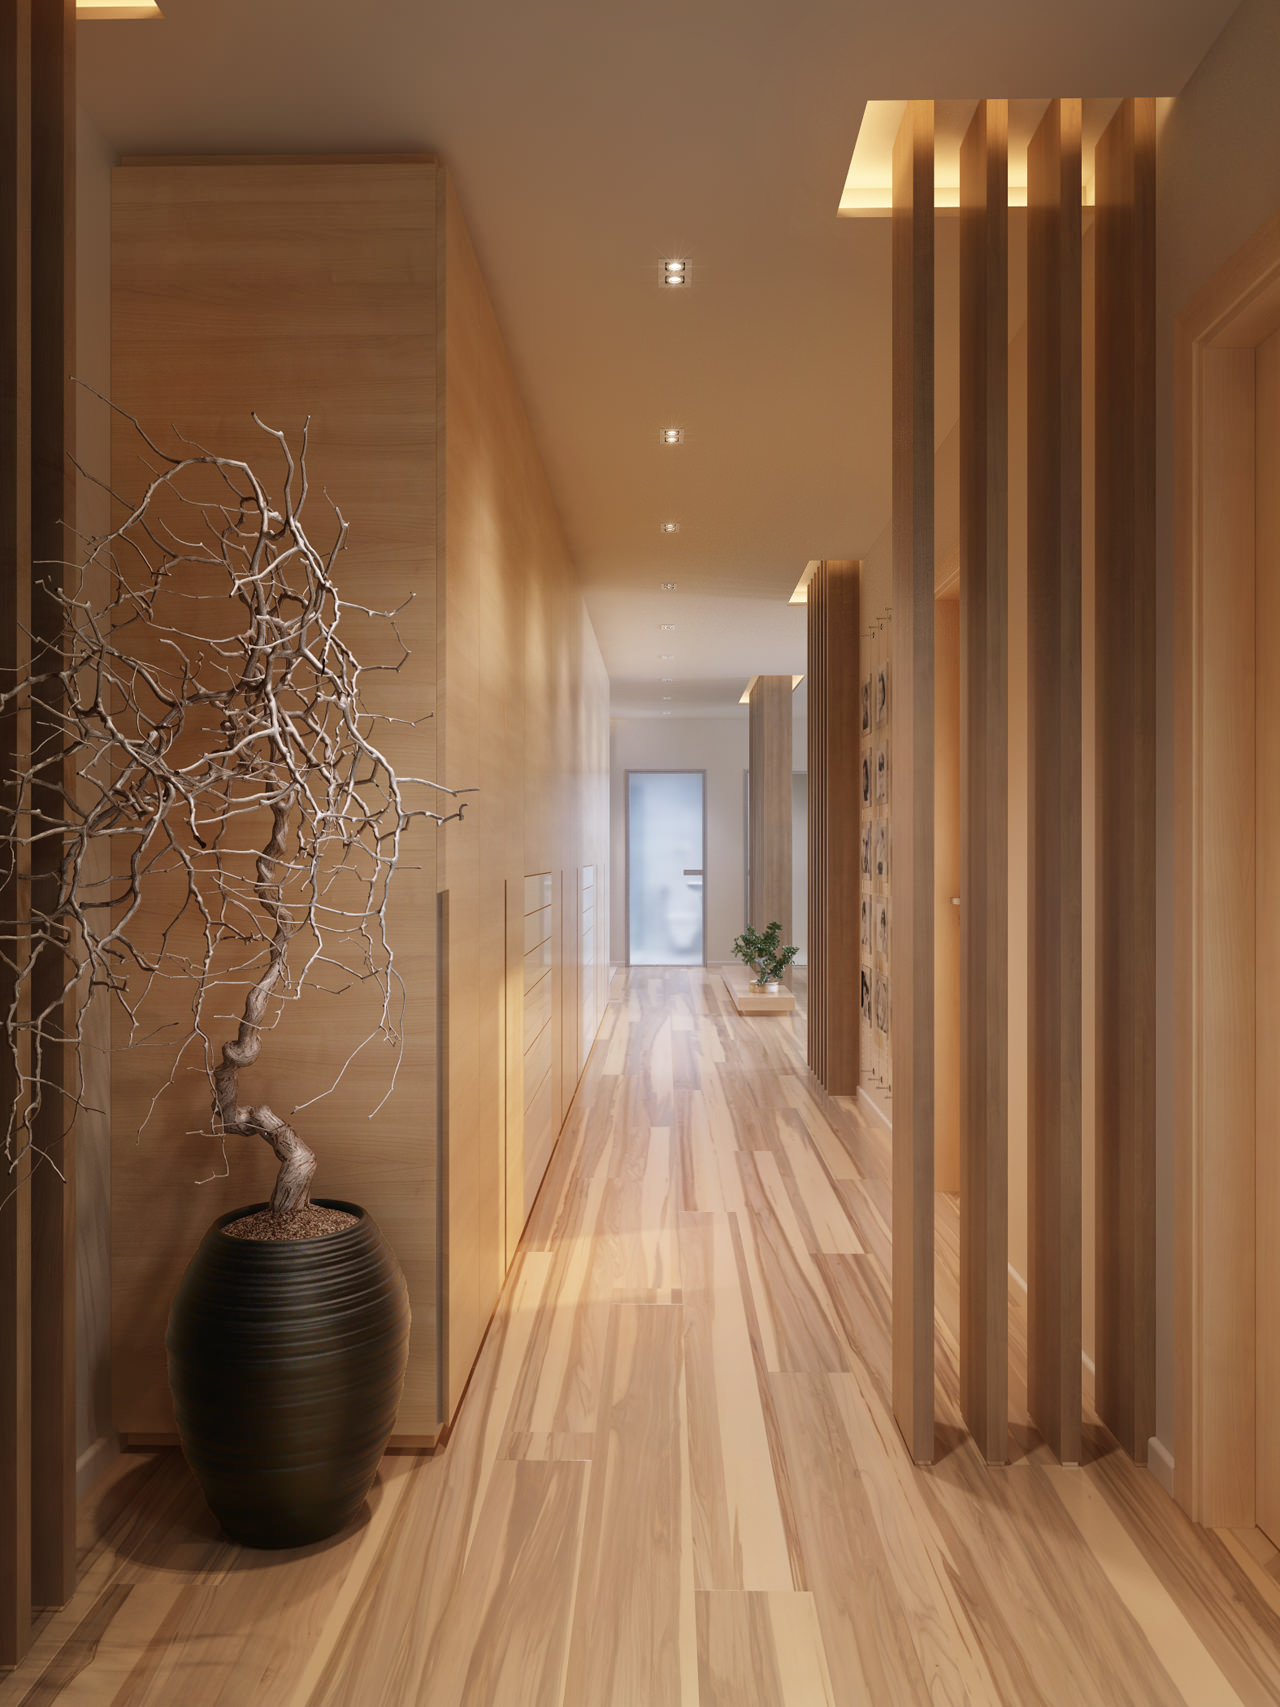 Different interesting corridors - AllArchitectureDesigns